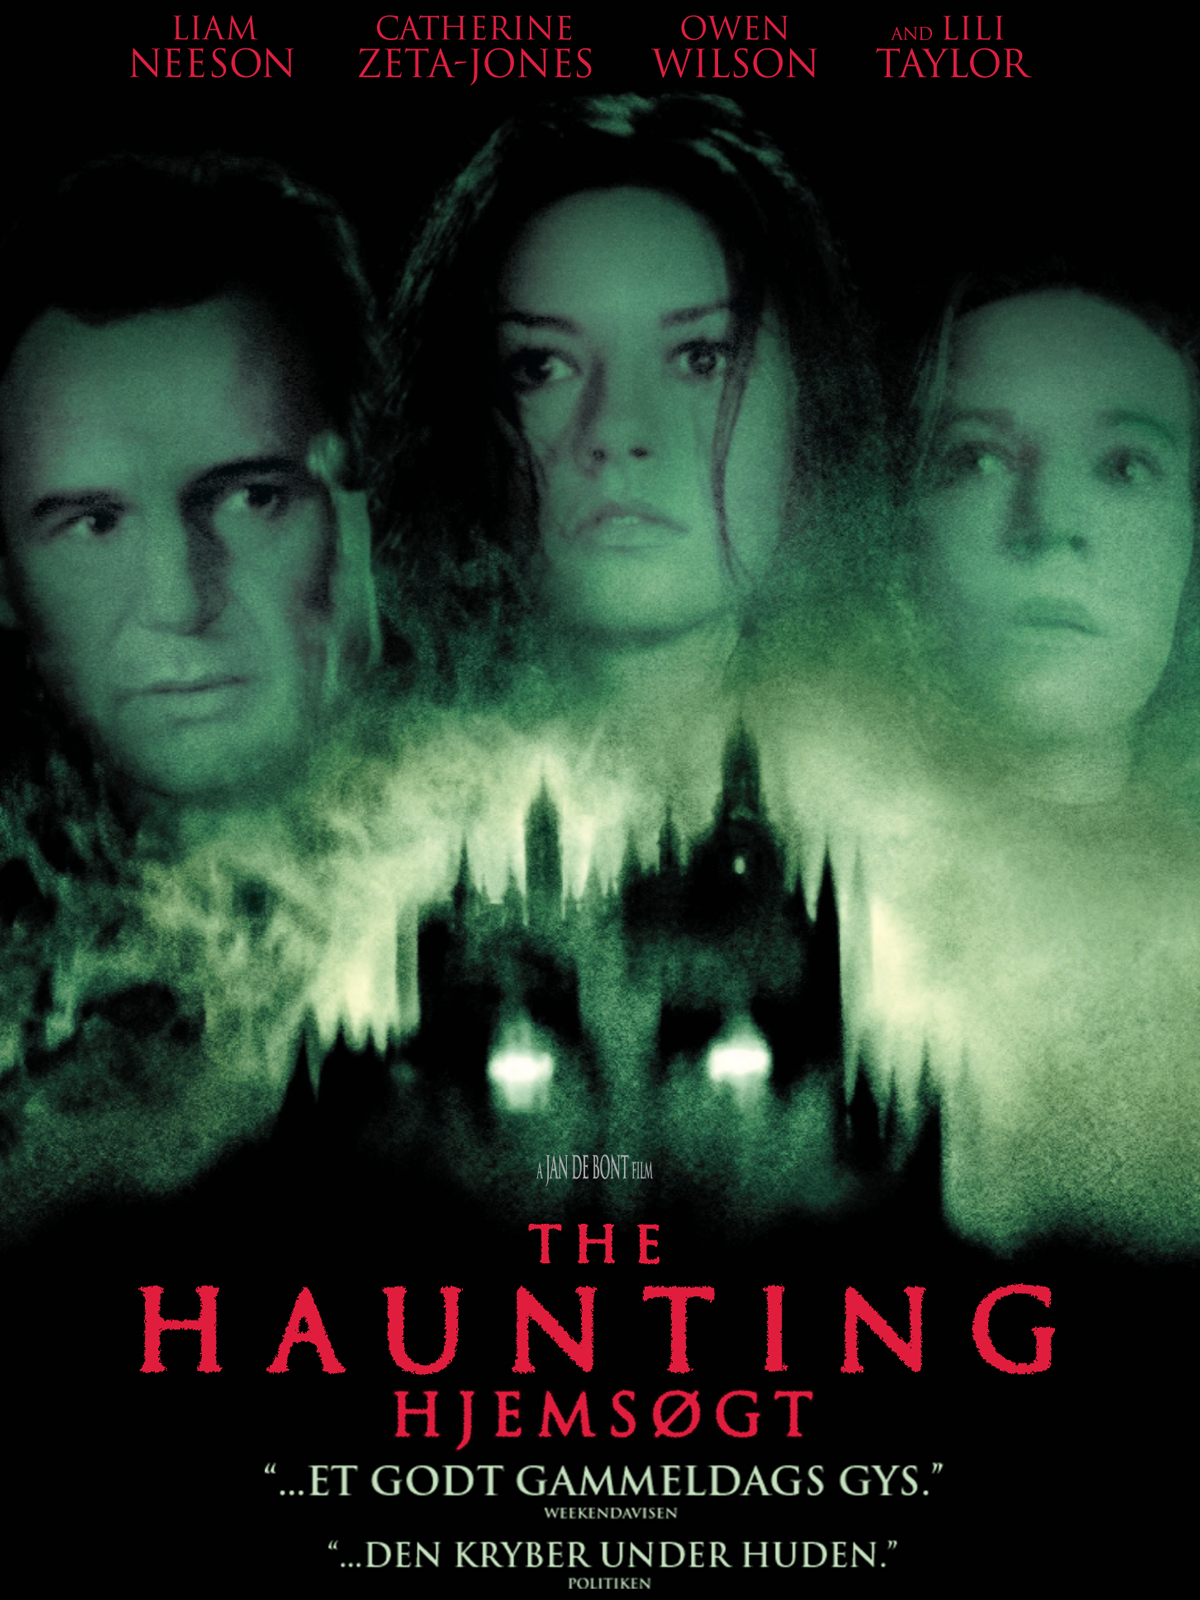 The Haunting – Hjemsøgt